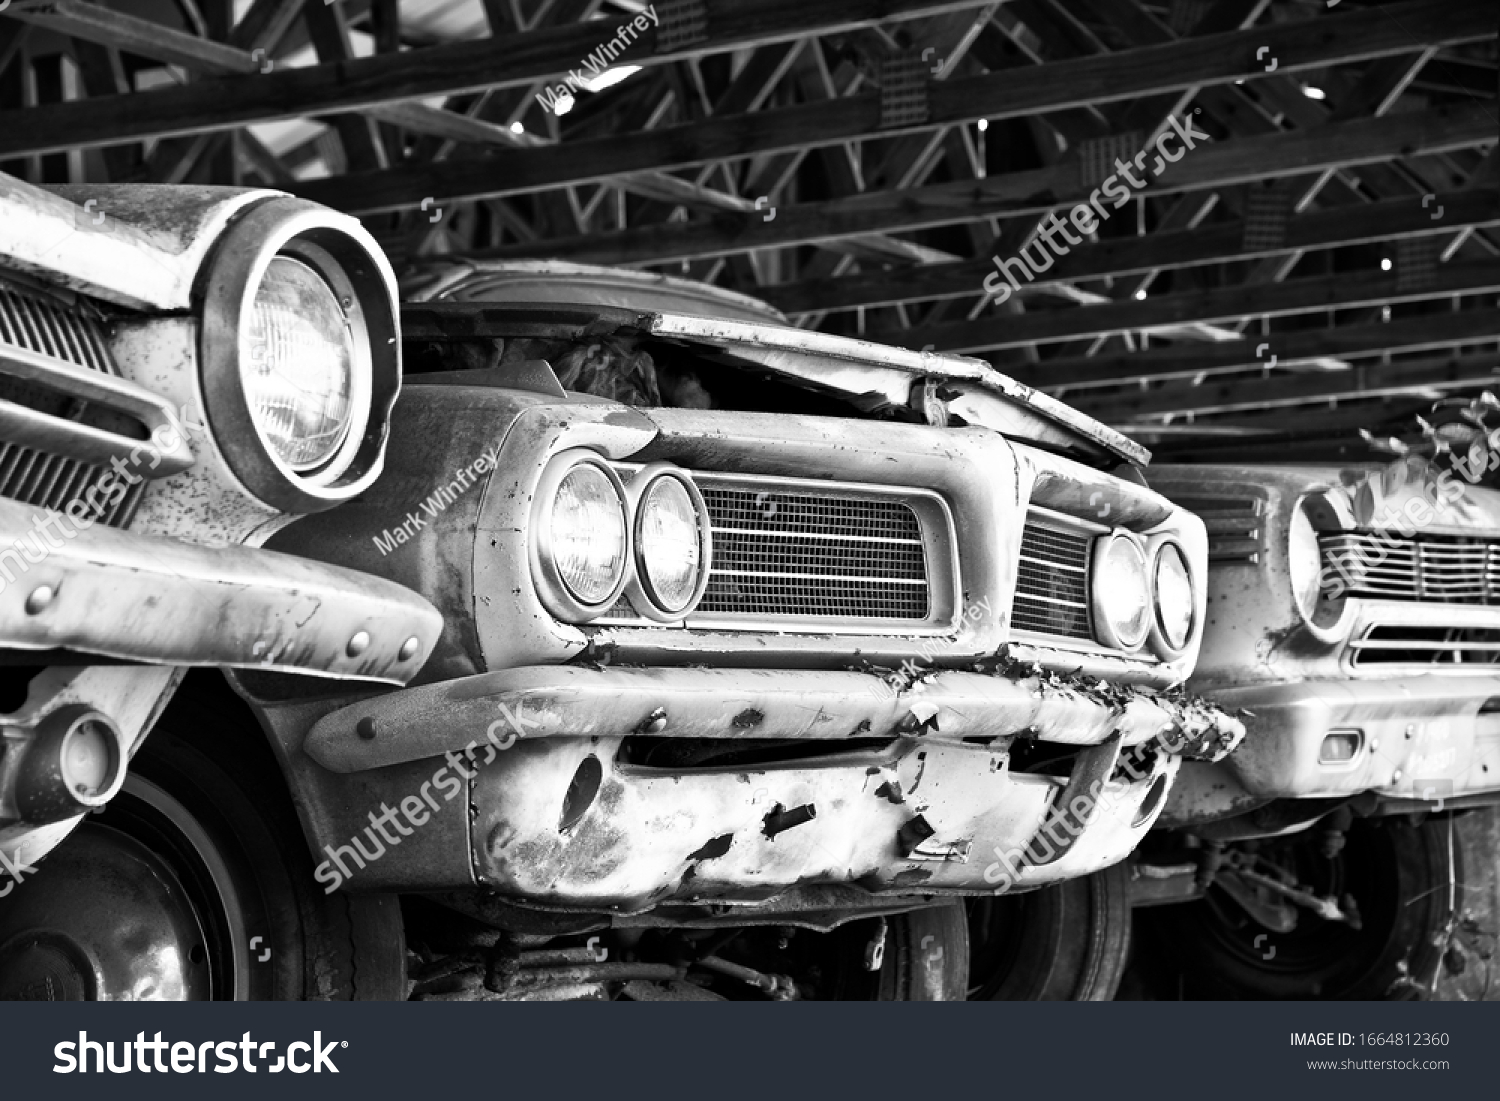 White, GA / USA - October 17, 2018: Close-up Image of the Front of an Old Cars in a Storage Shed at the Junk Yard